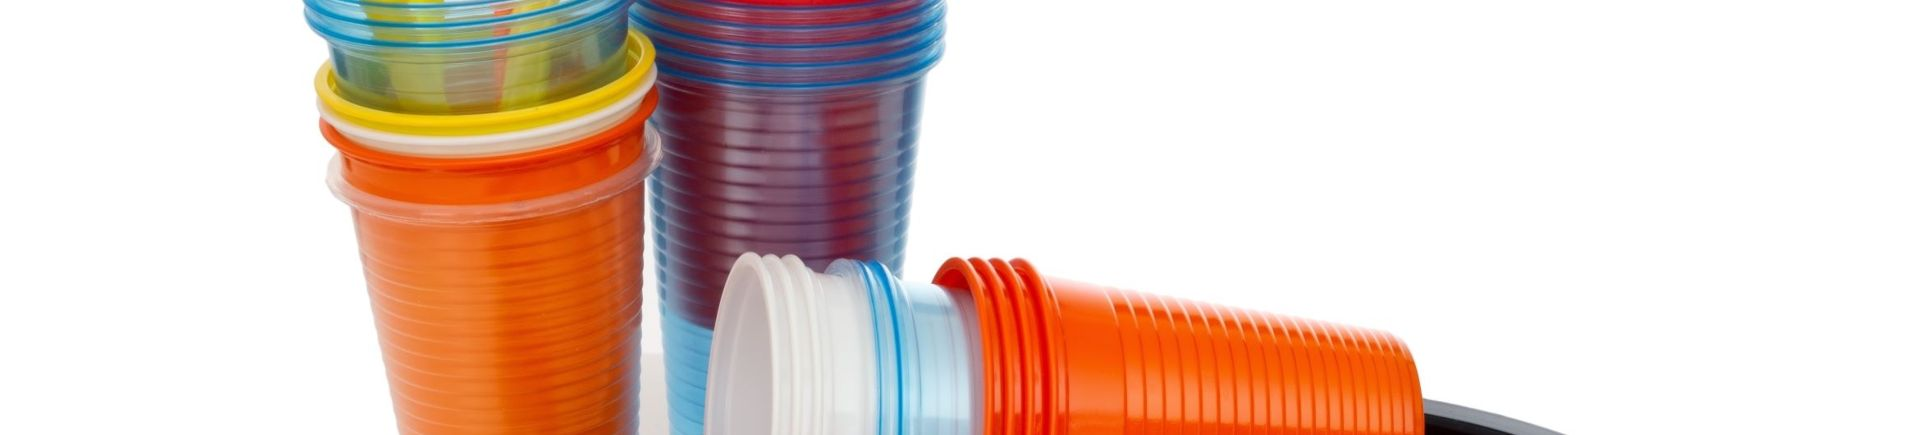 Paperboard cups and containers